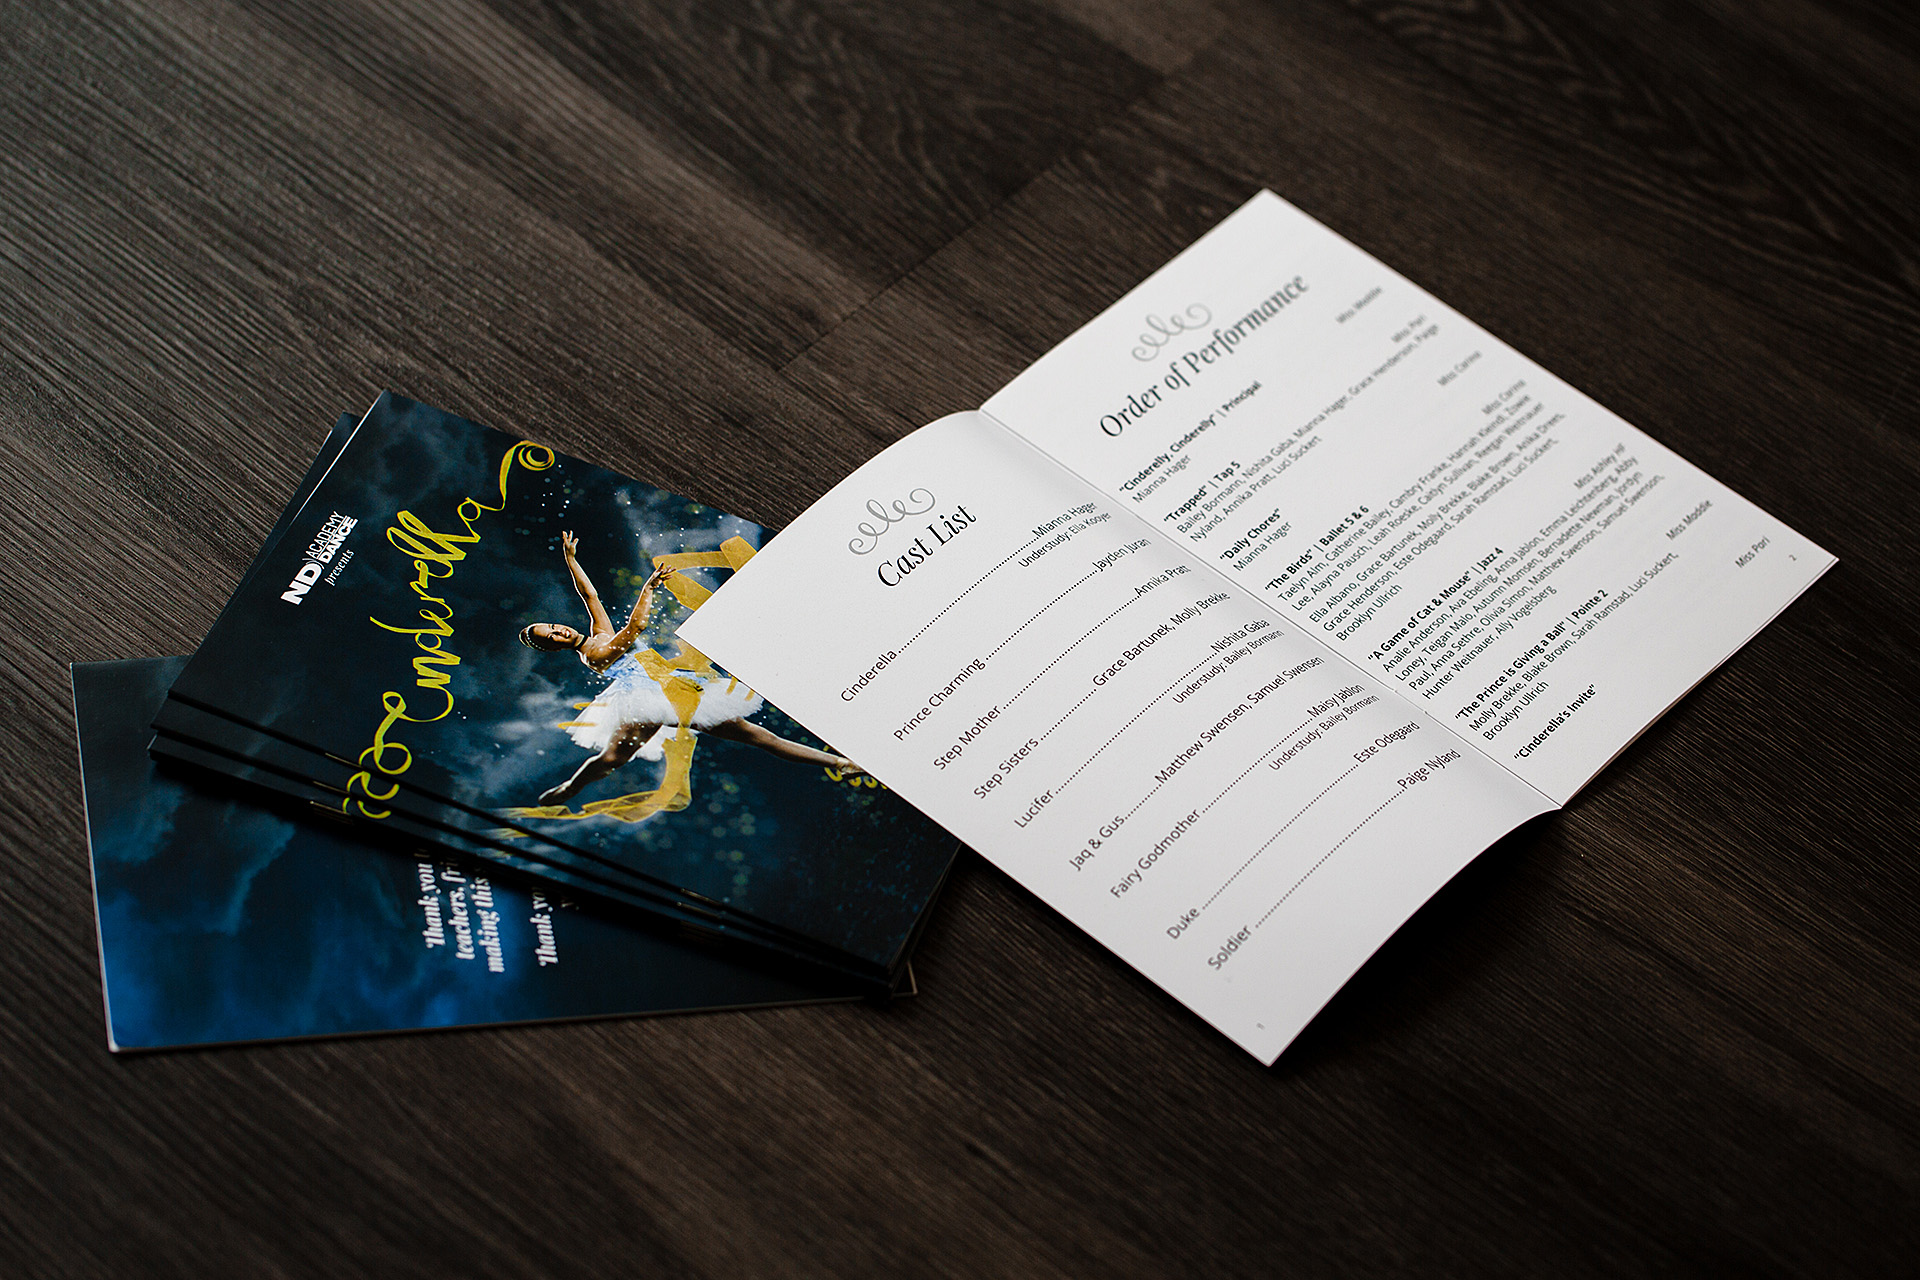 A stack of Cinderella recital programs with an open program displaying order of performance laying on a wood floor